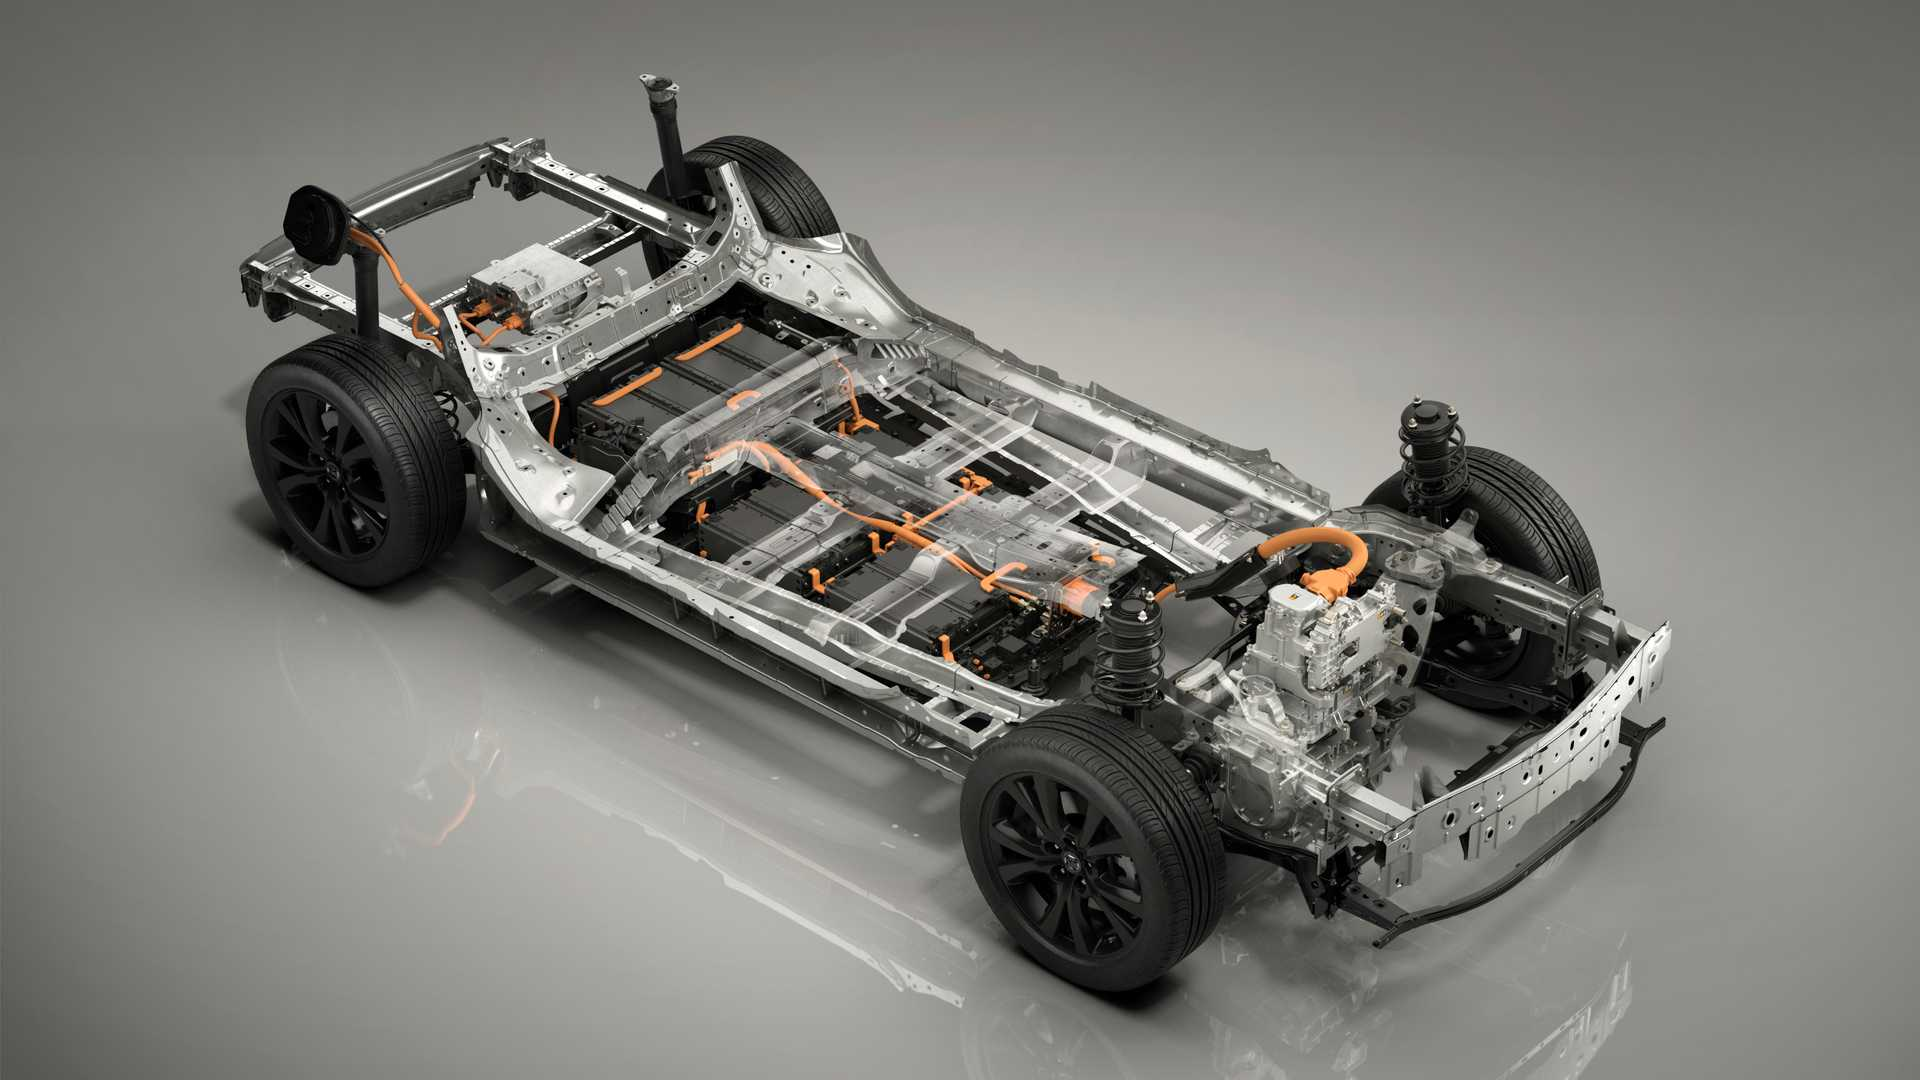 rotary-engined-mazda-e-tpv-concept-showcased-with-355-kwh-battery_7.jpg